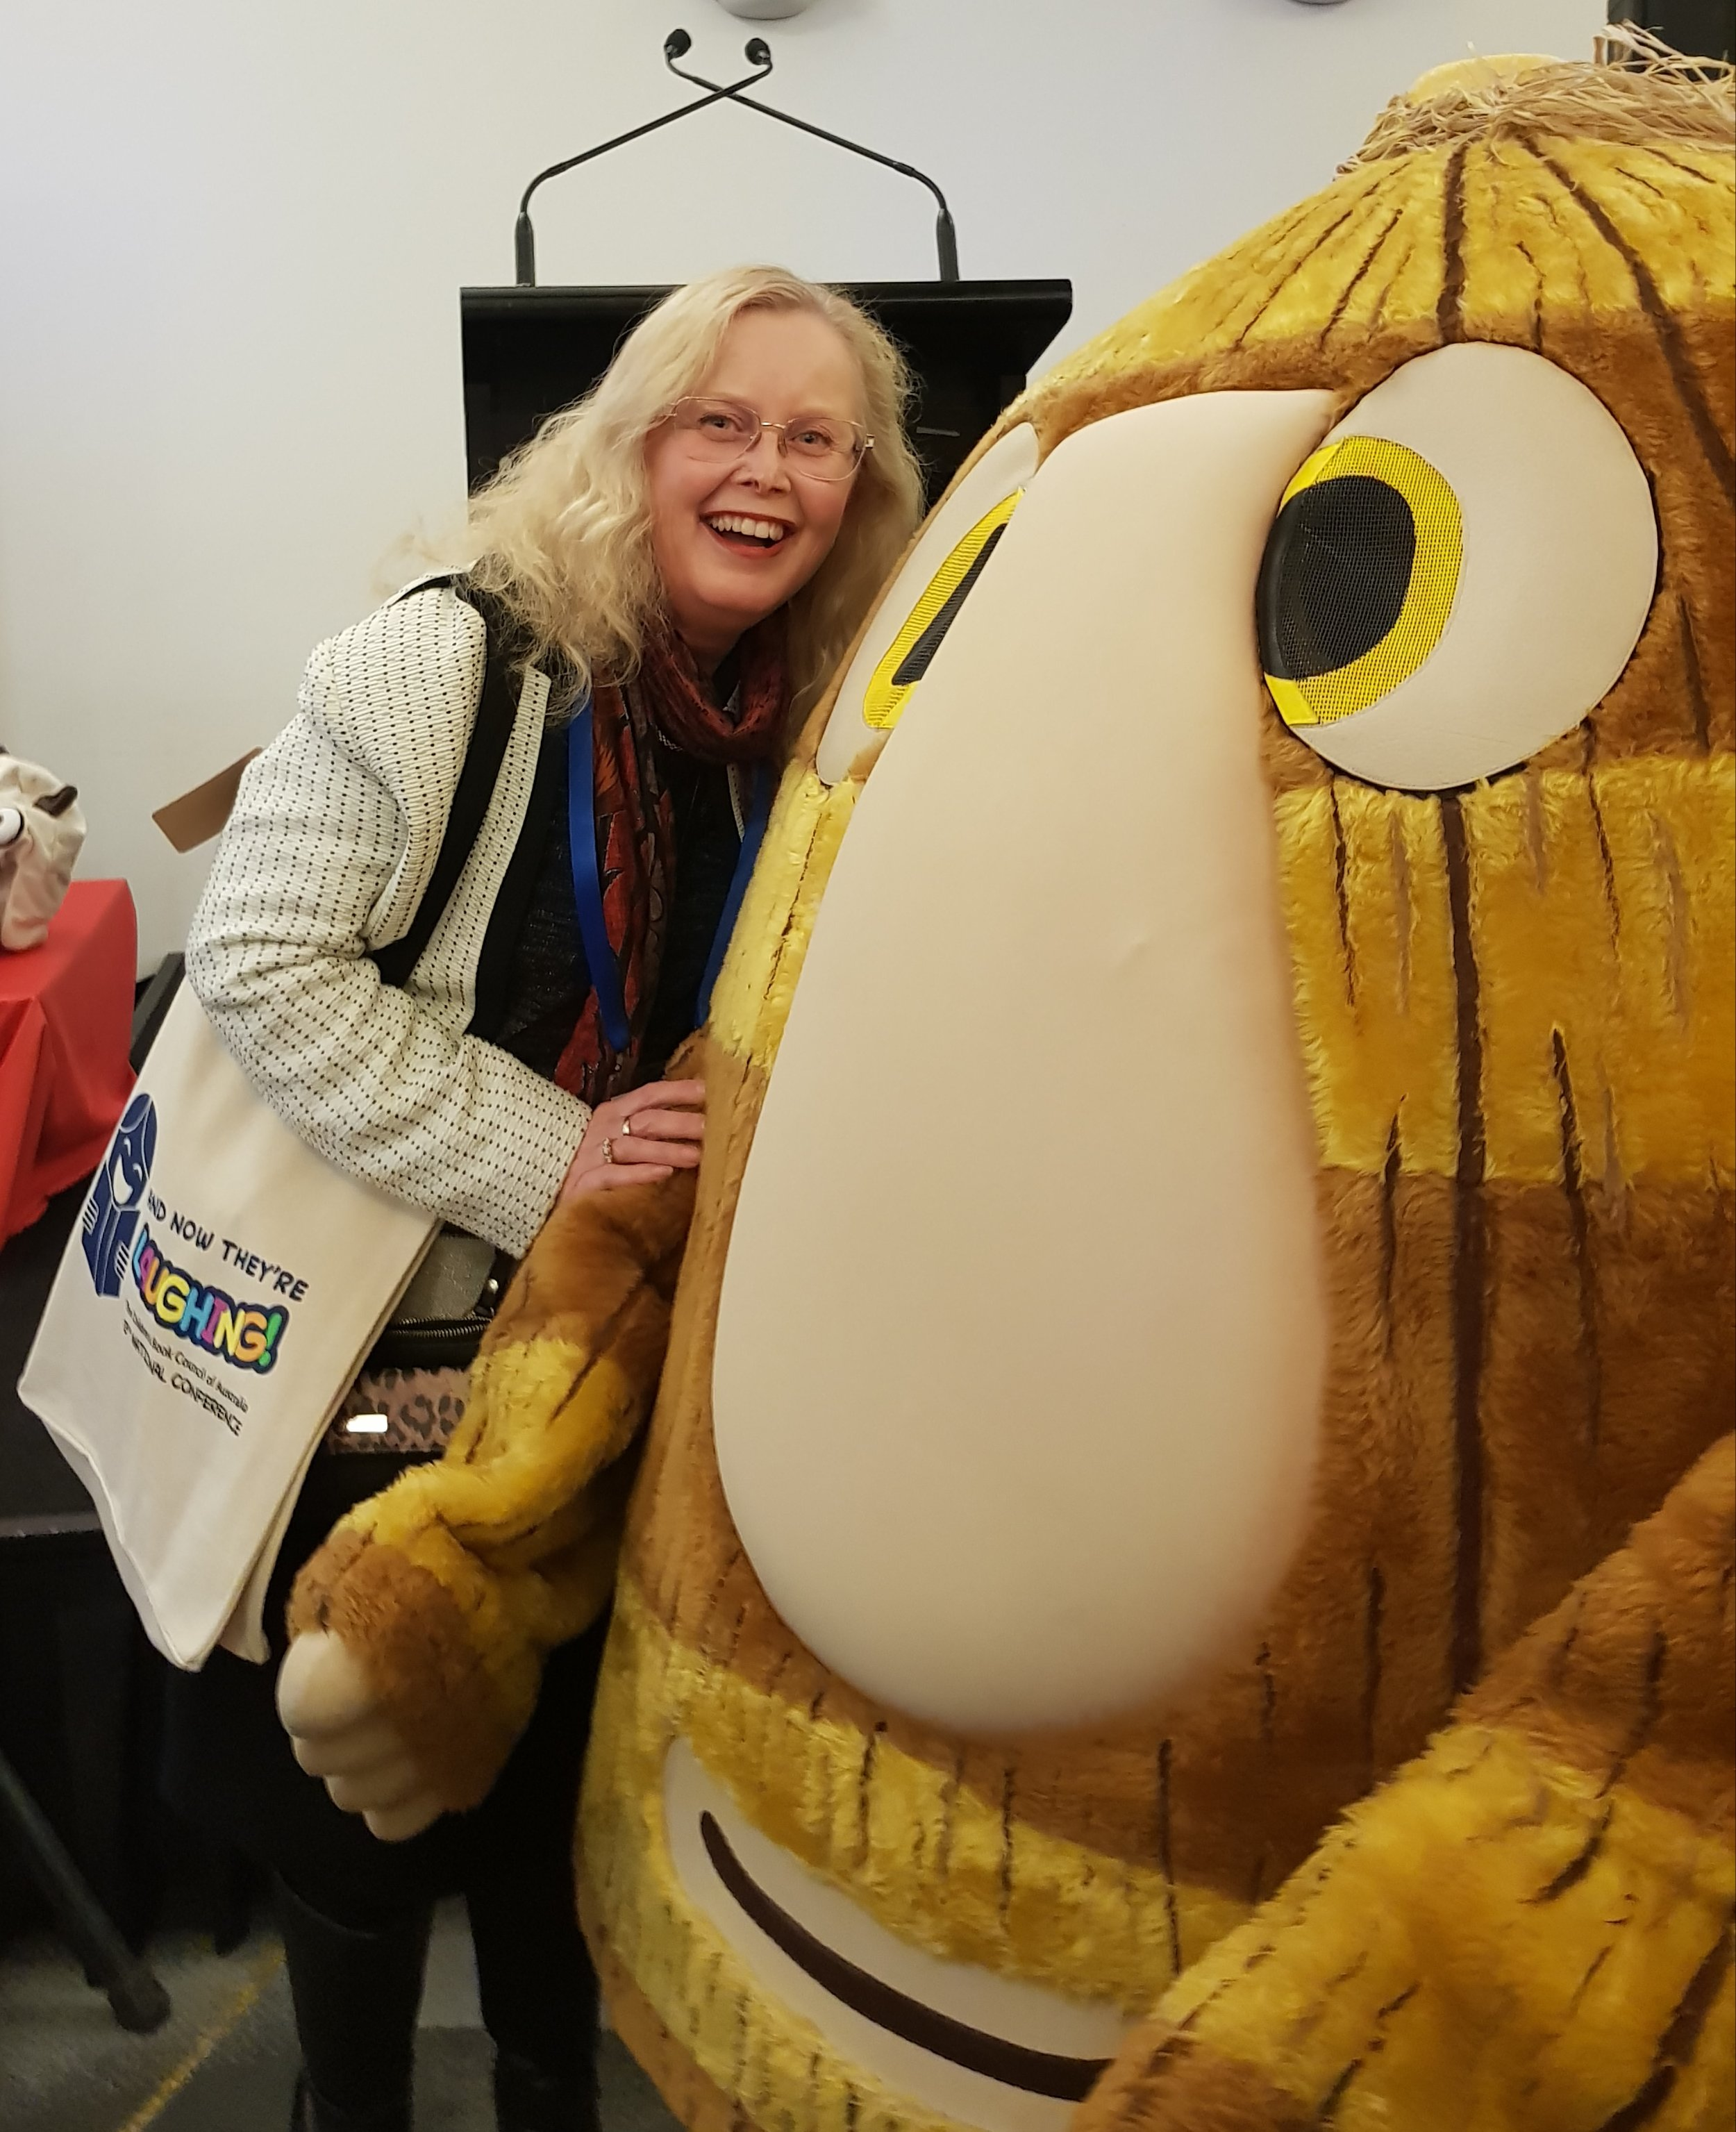 Me with Grug, Happy 40th birthday to an iconic children's book character at the CBCA conference.